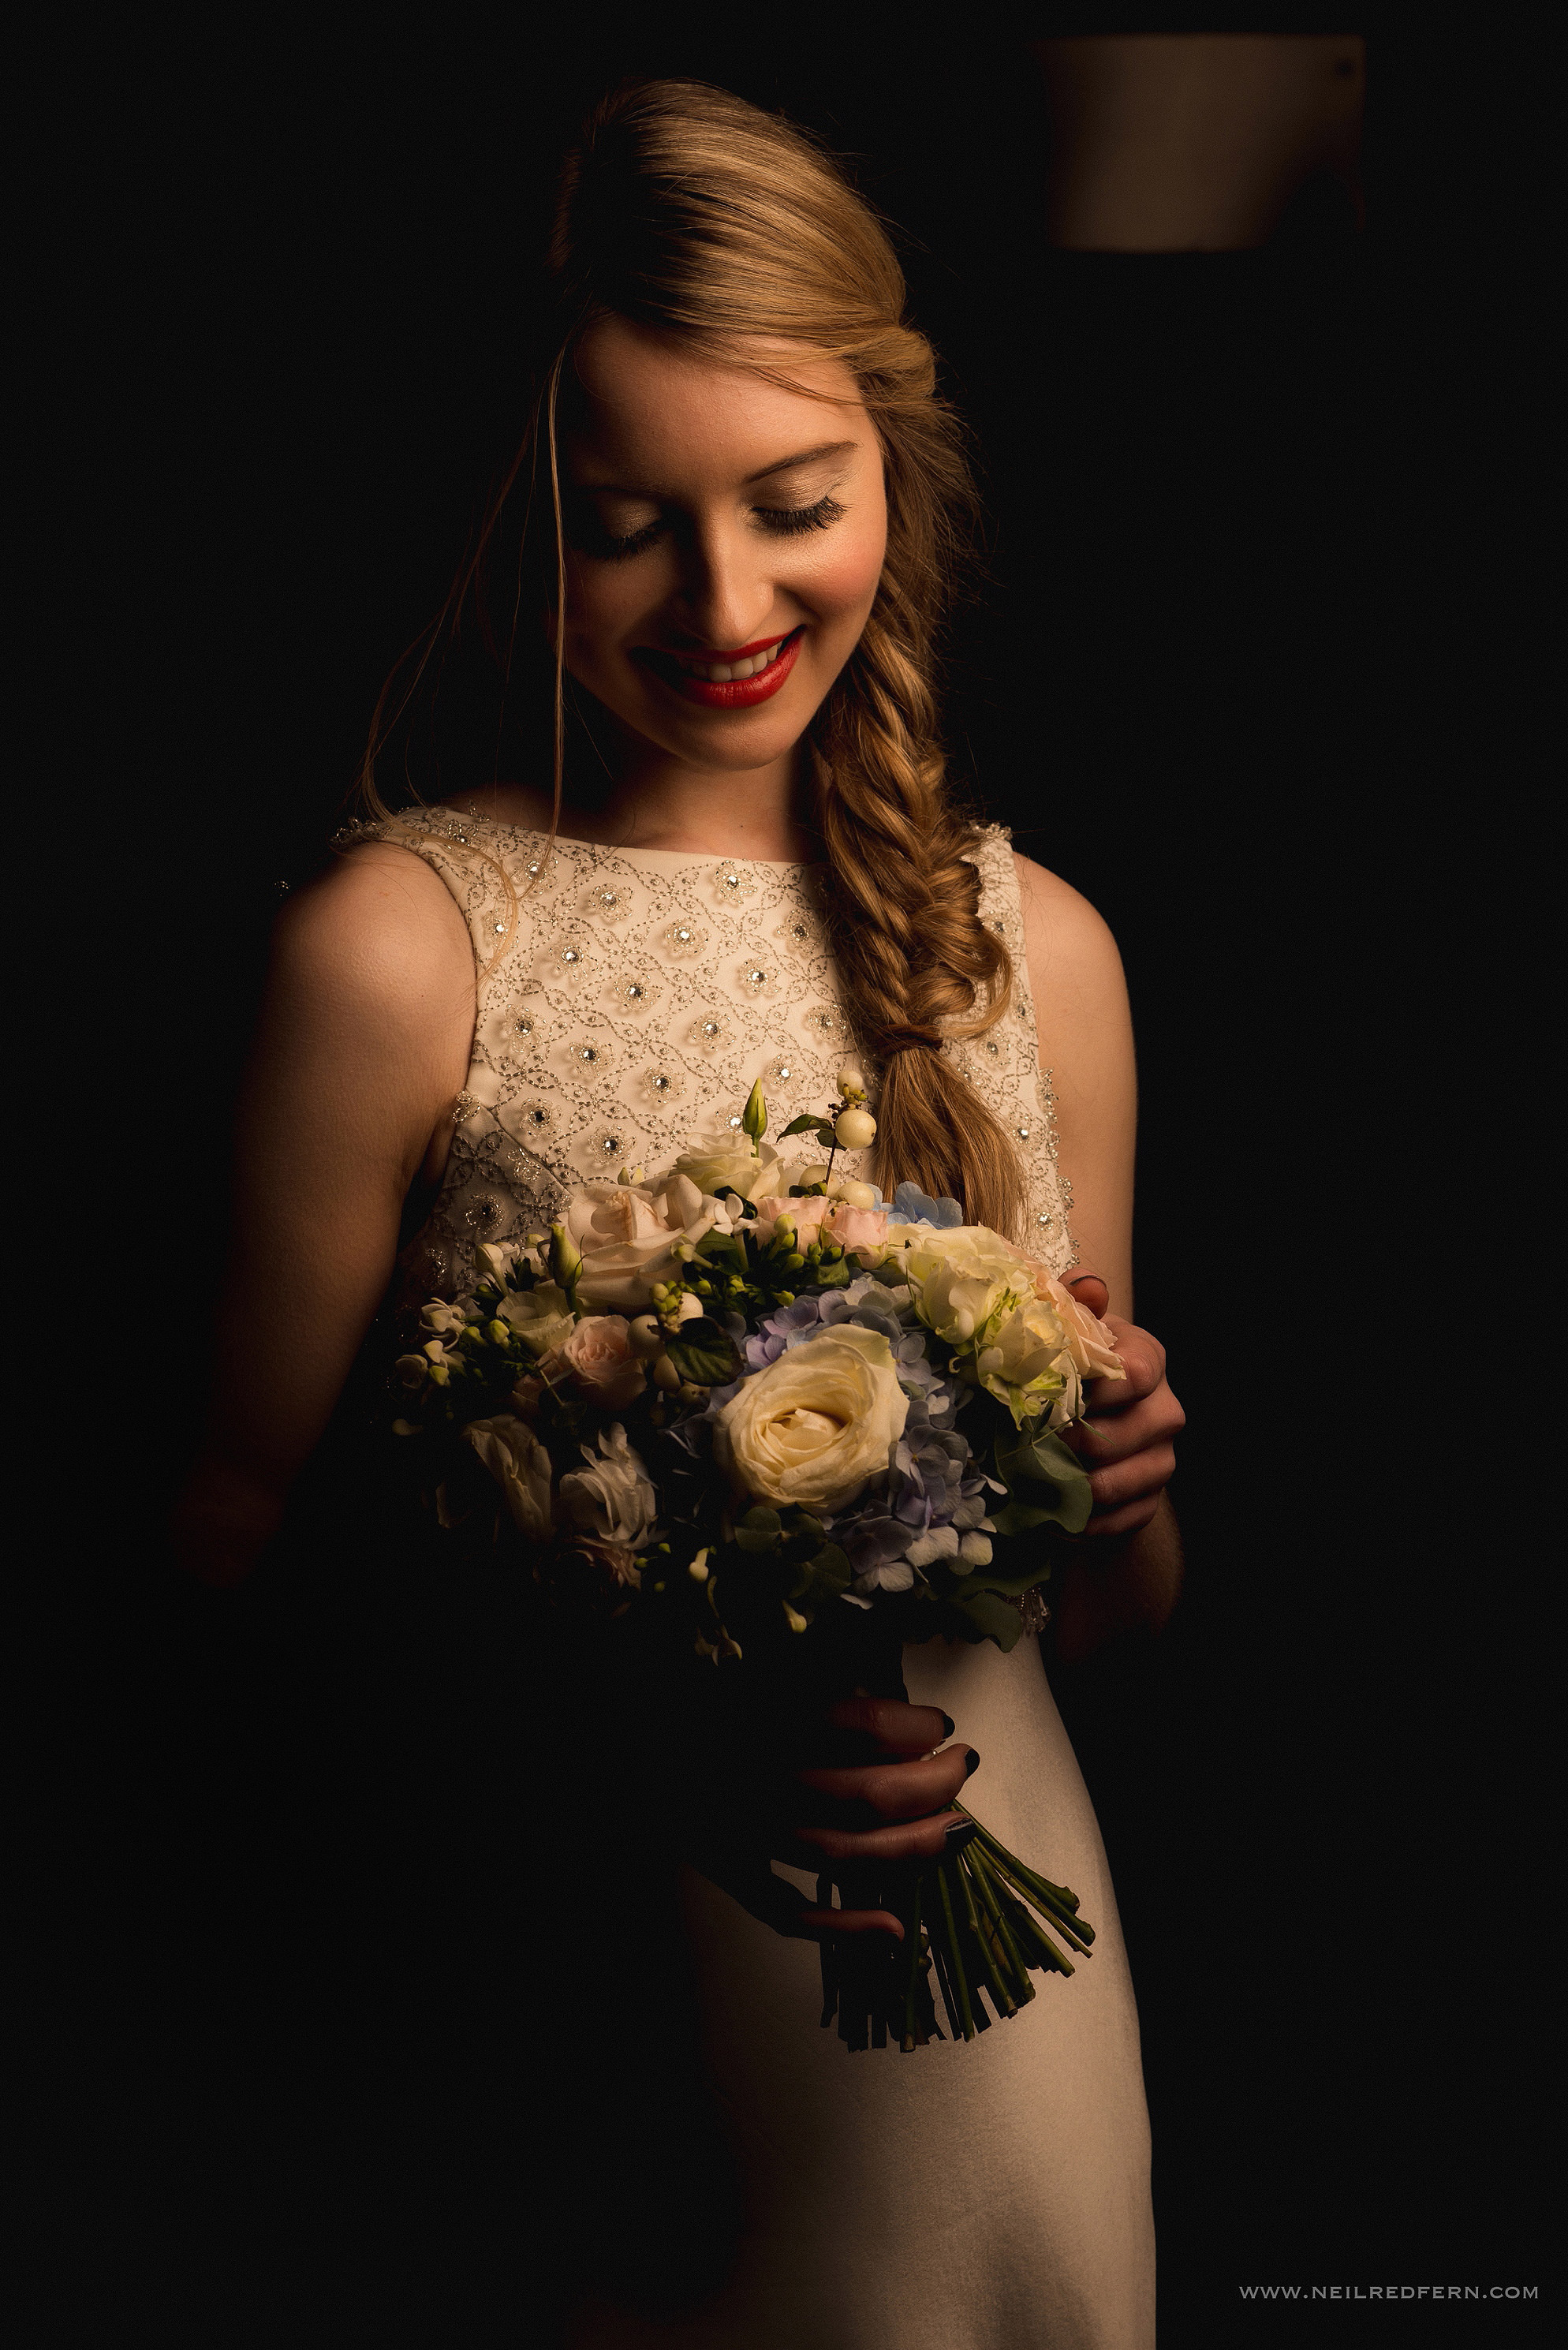 Wedding-photography-training-13